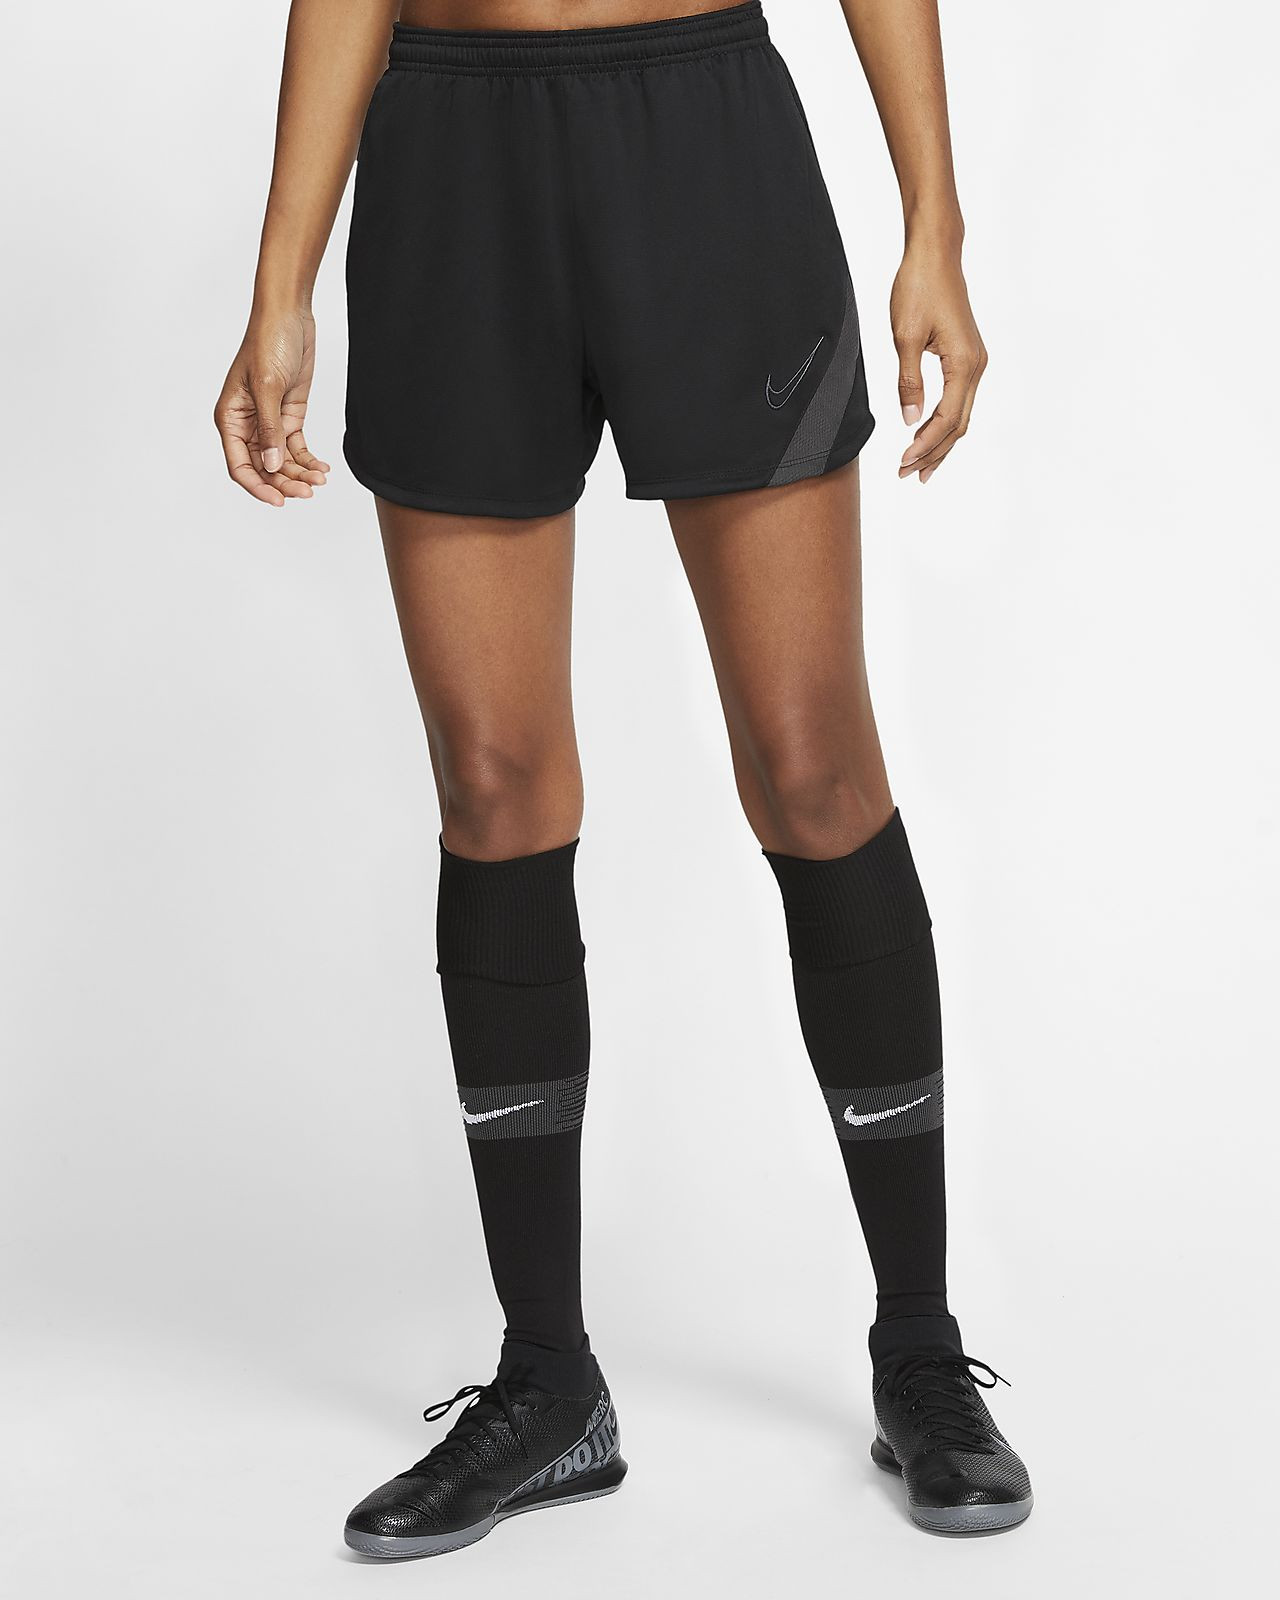 Nike Dri-FIT Academy Pro Women's Football Shorts